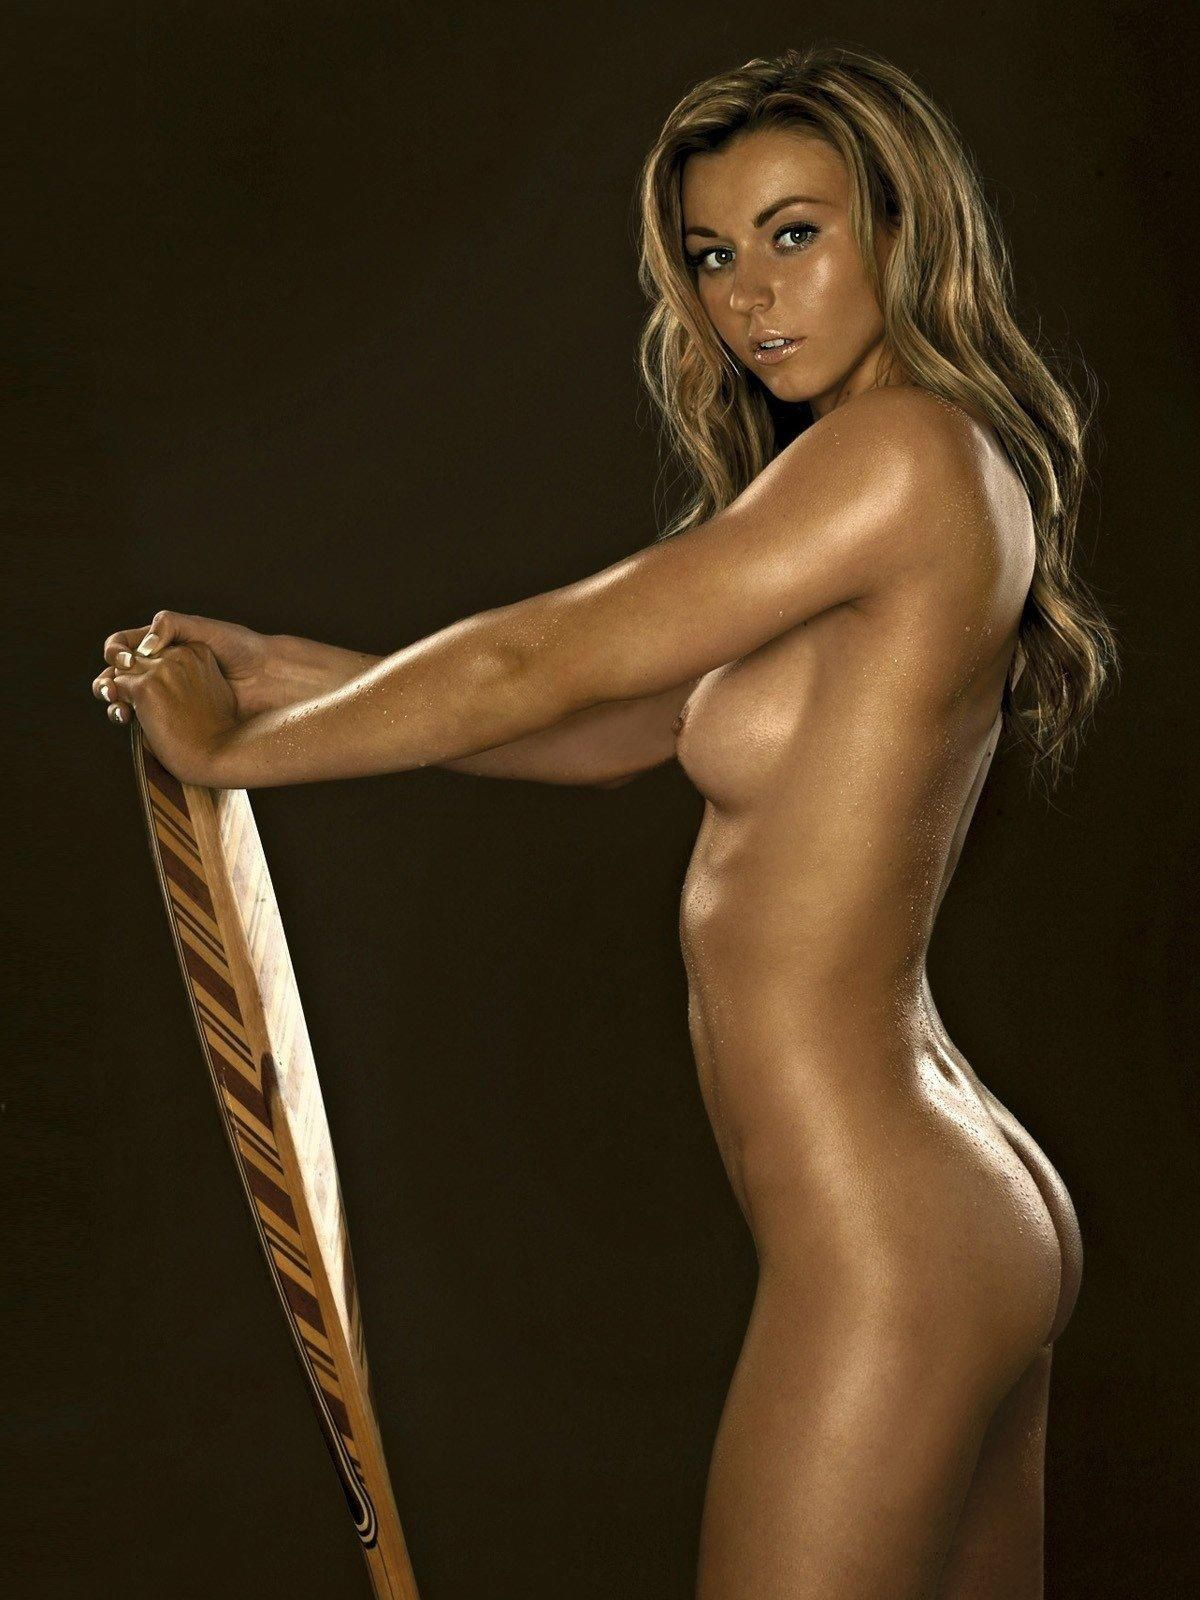 Naked Olympic Athletes  New Girl Wallpaper-1264